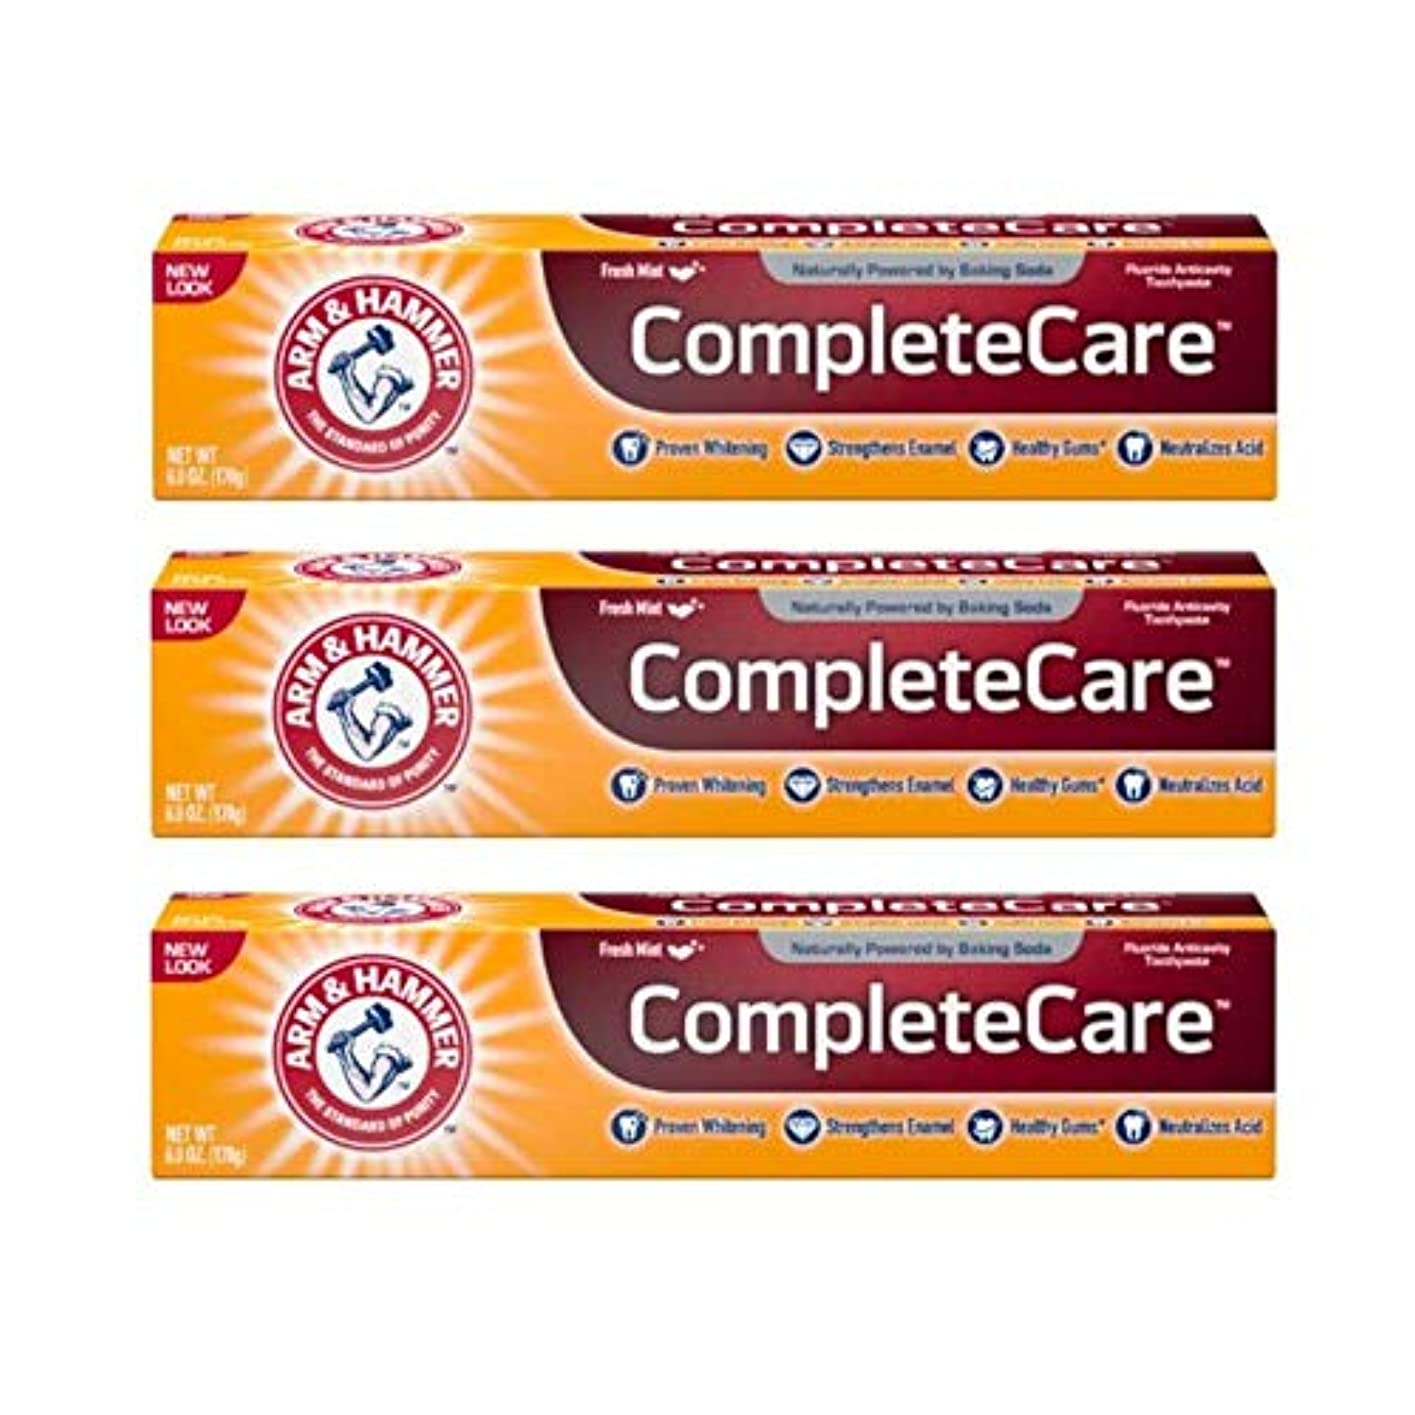 対話敬礼ブラウンArm & Hammer Fluoride Anti-Cavity Toothpaste - 6 oz - 3 pk by Arm & Hammer